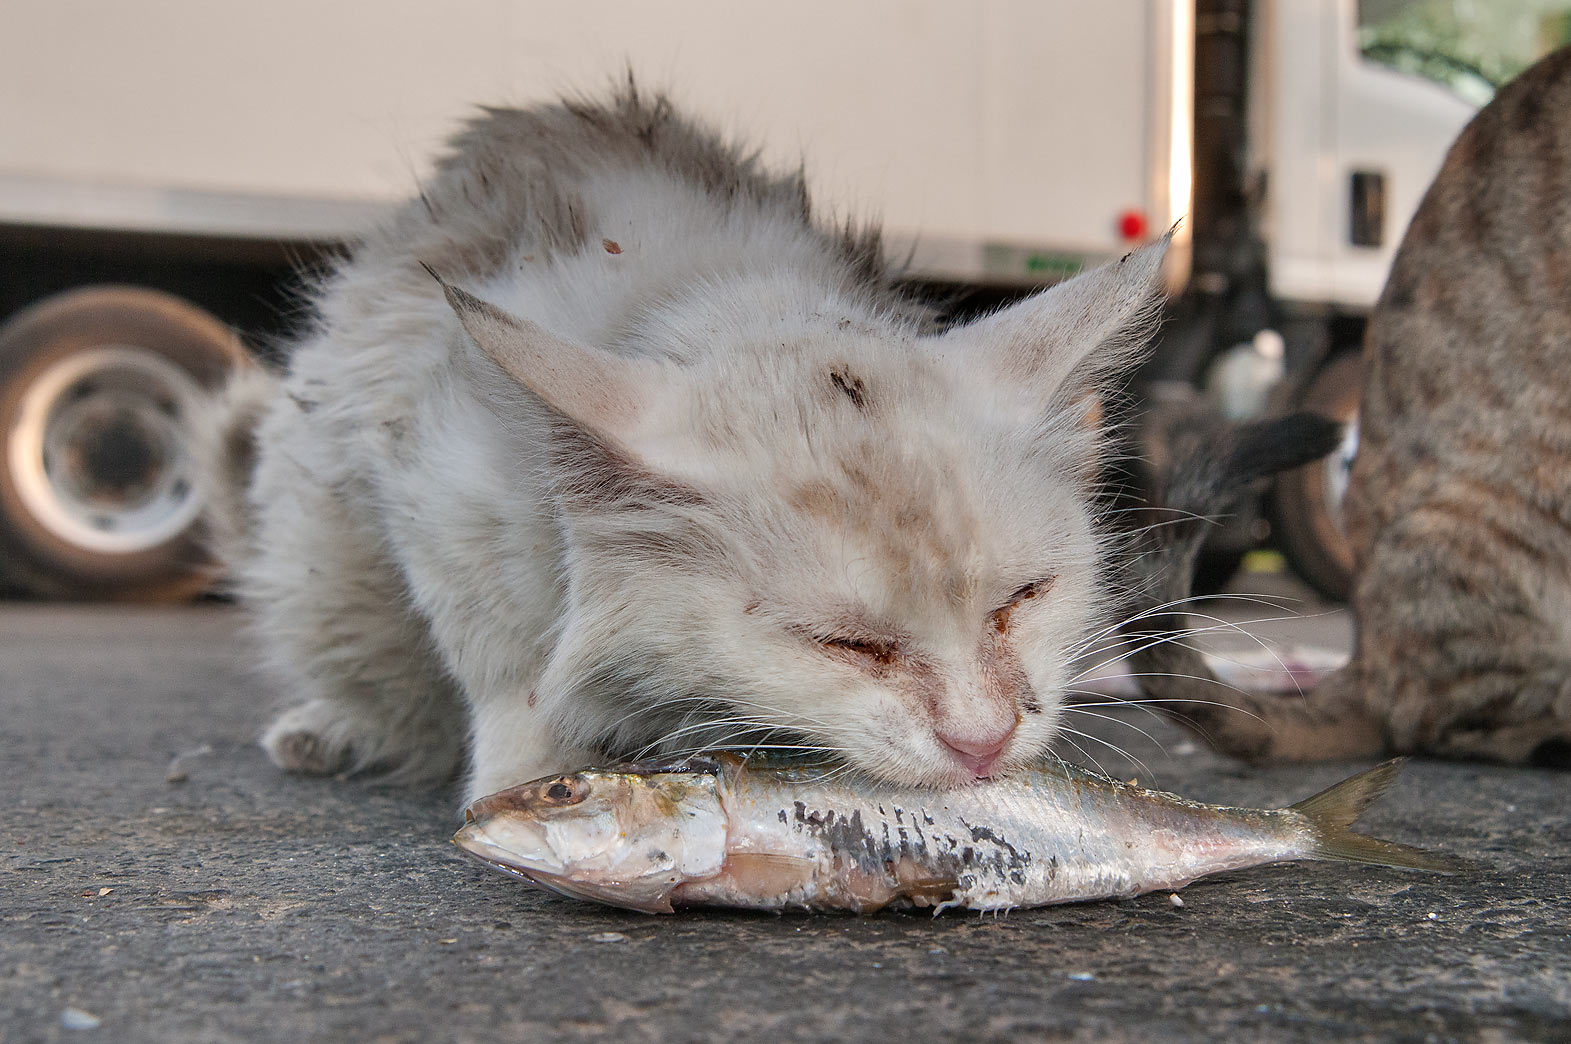 White cat eating a fish near Wholesale Fish Market in Abu Hamour. Doha, Qatar